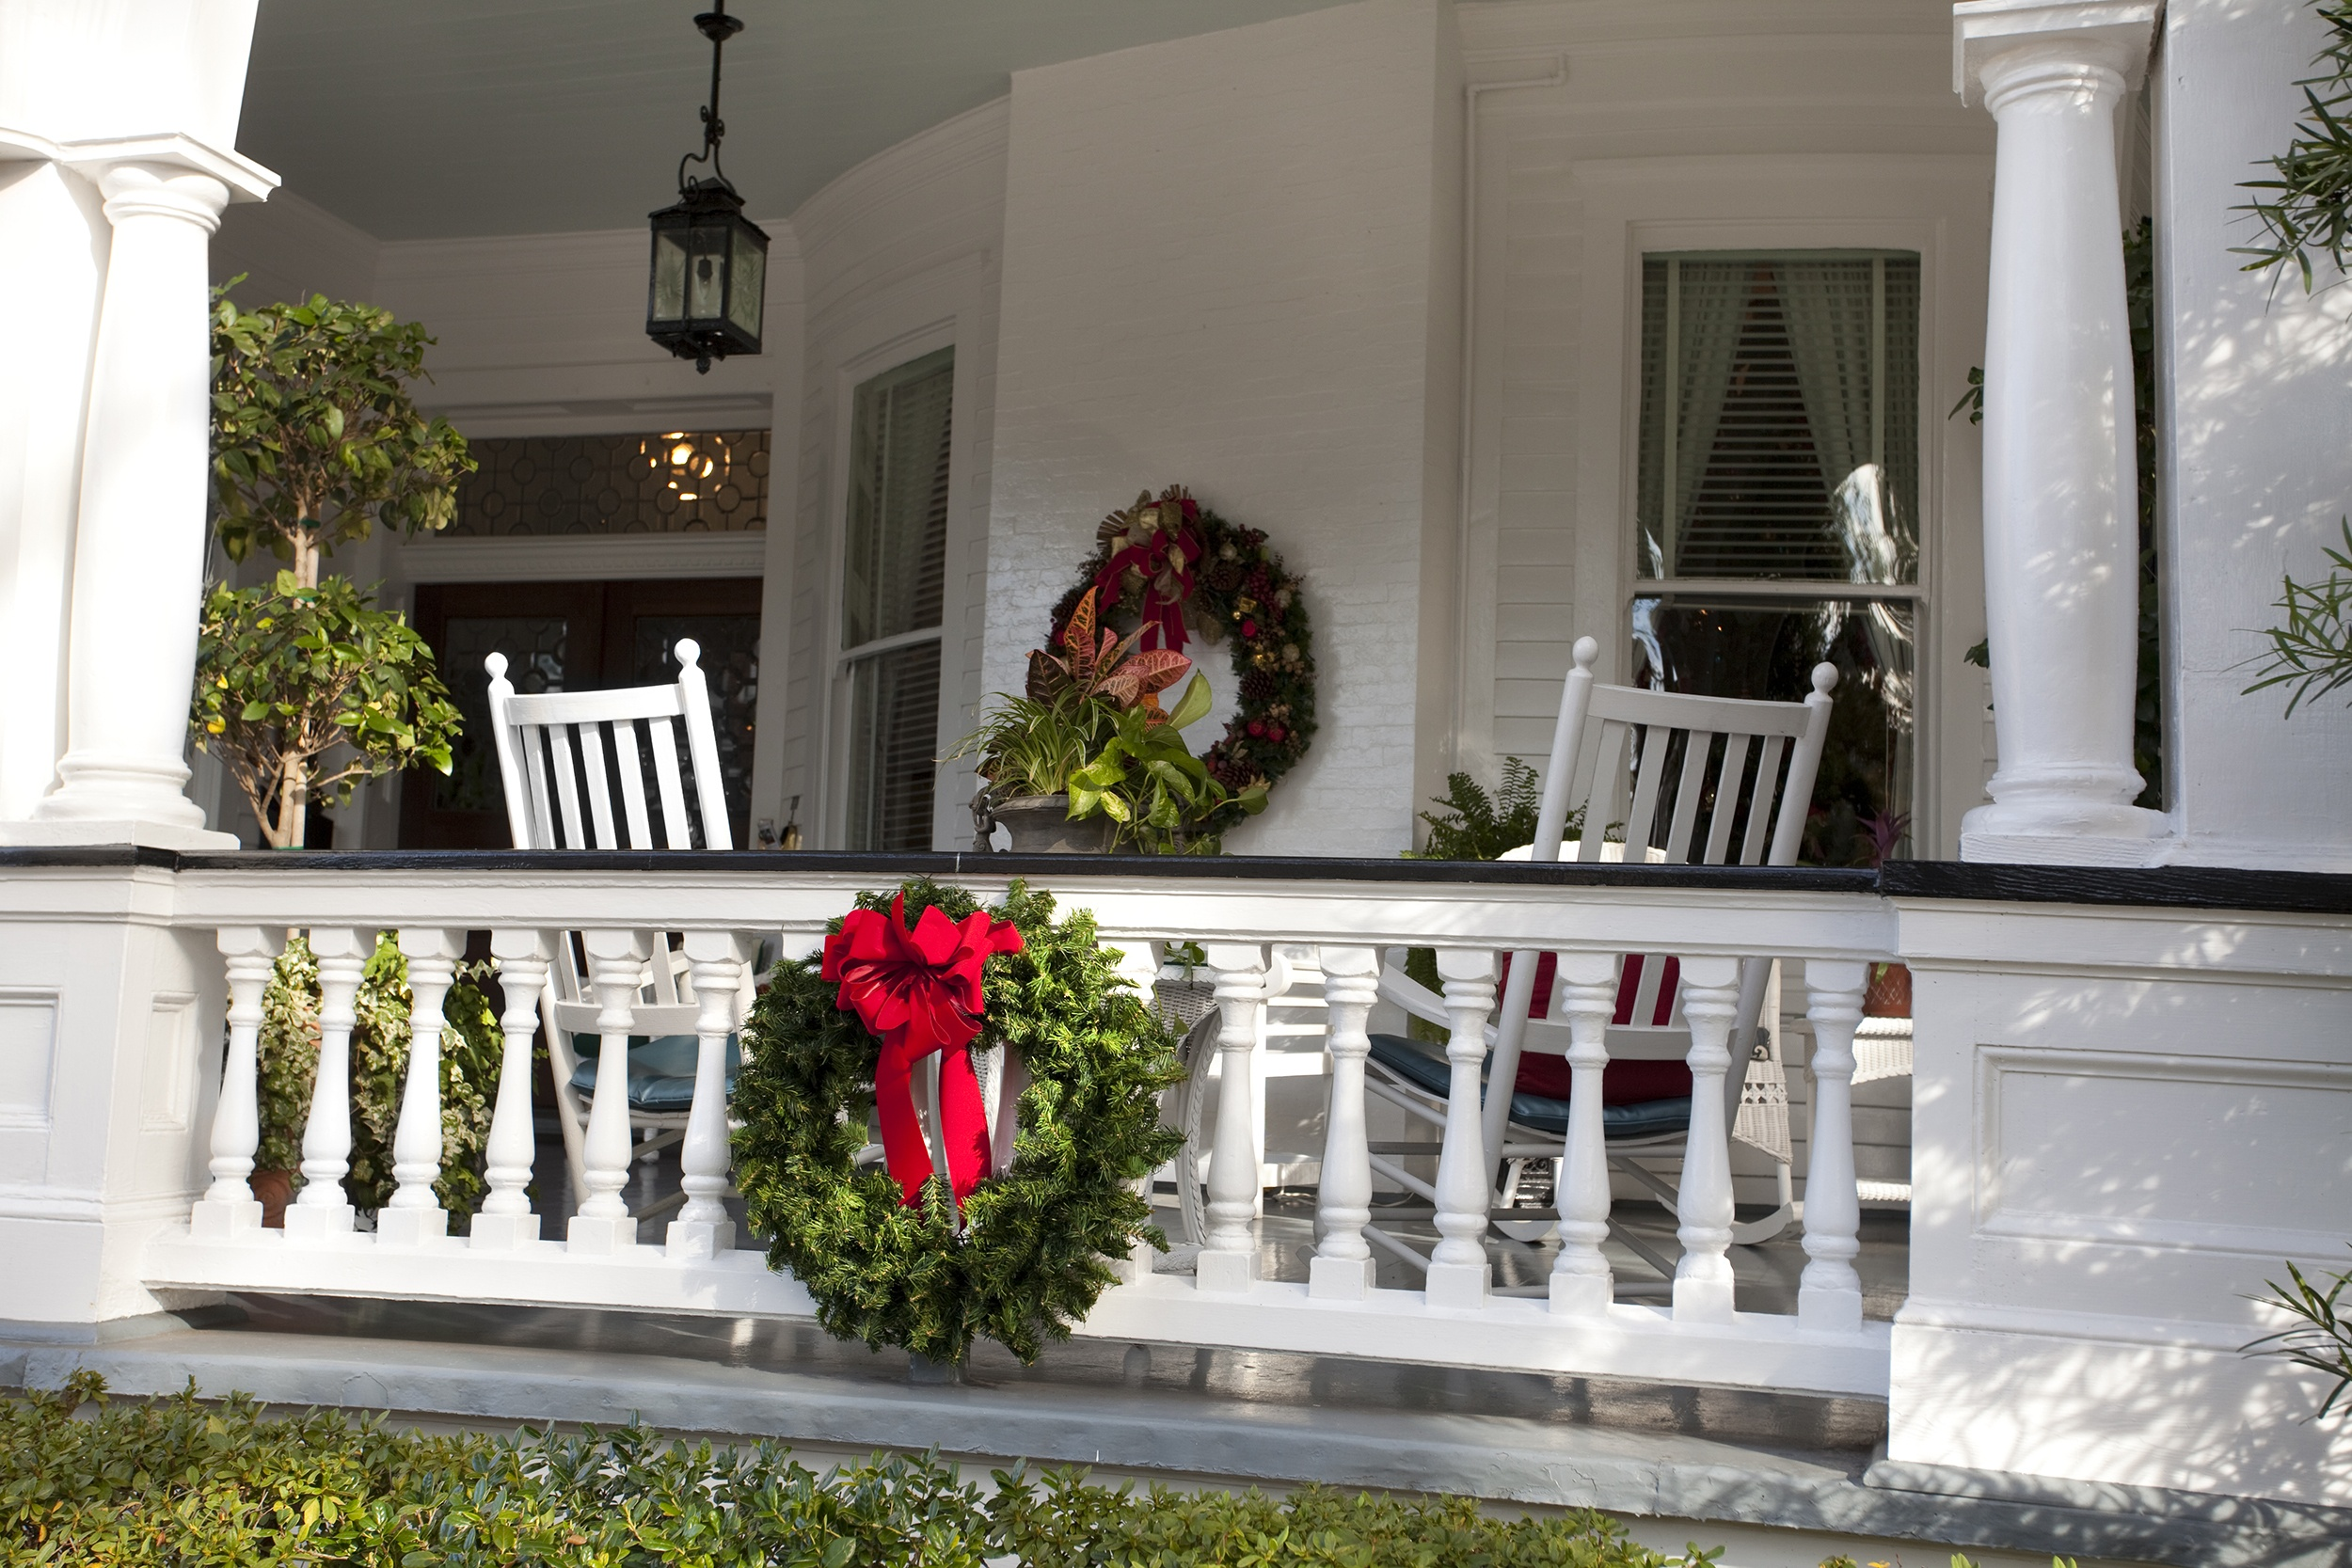 create a festive christmas porch with wreaths hanging along railings and down the staircase - Christmas Porch Decor